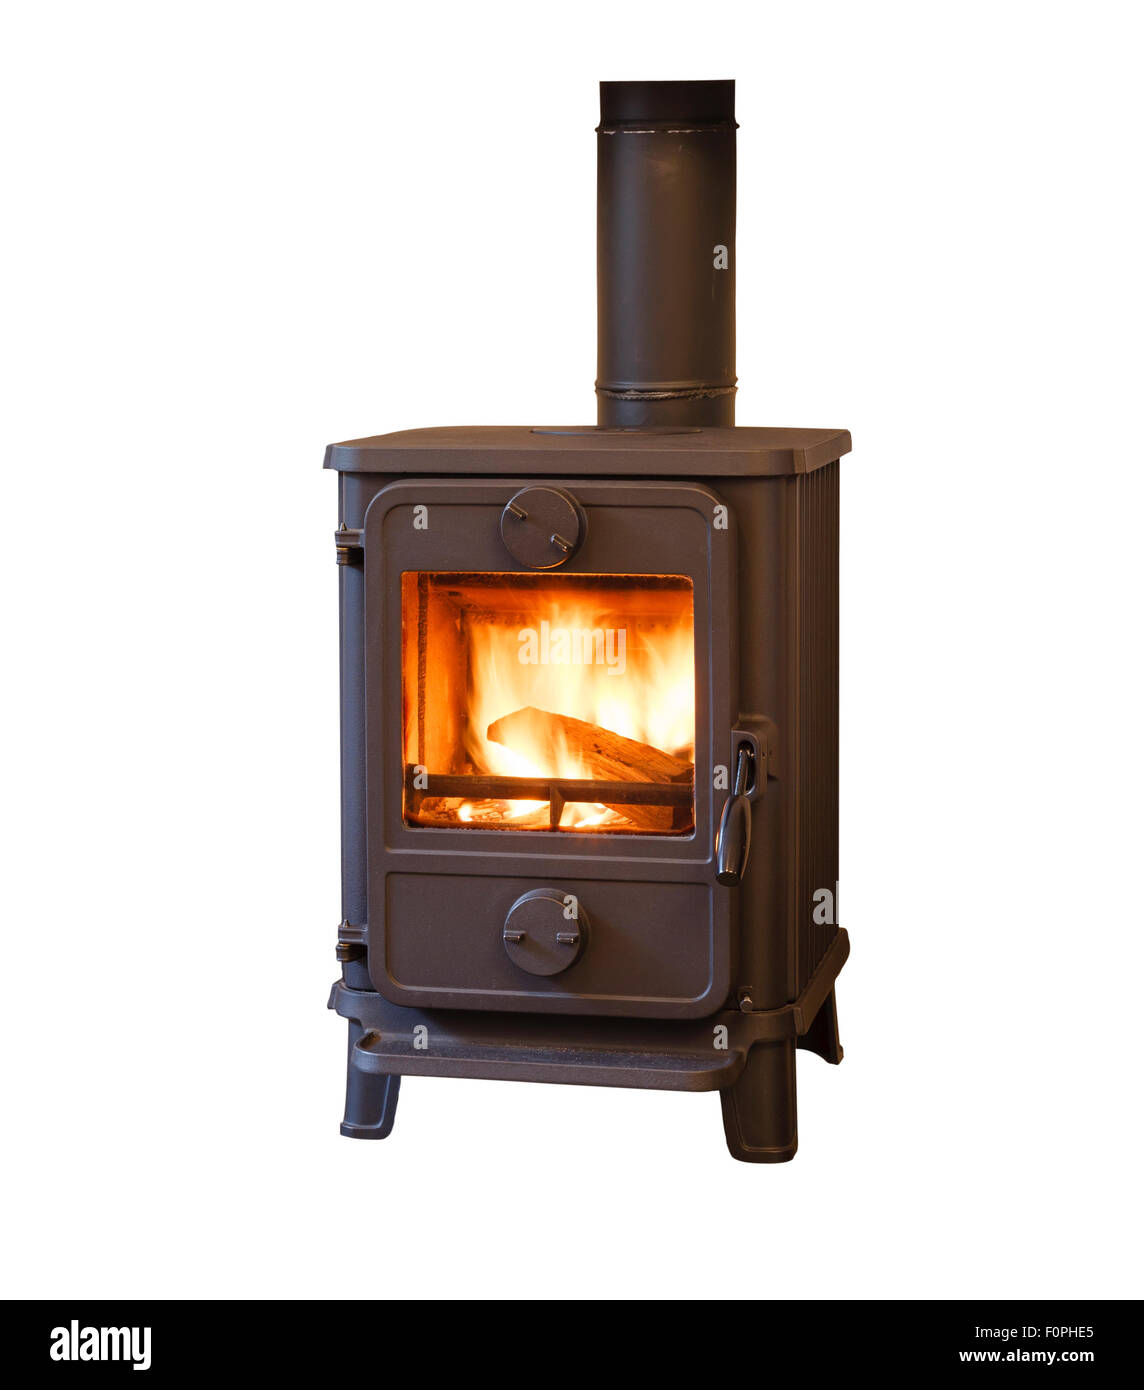 Wood burner stove isolated against a white background - Stock Image